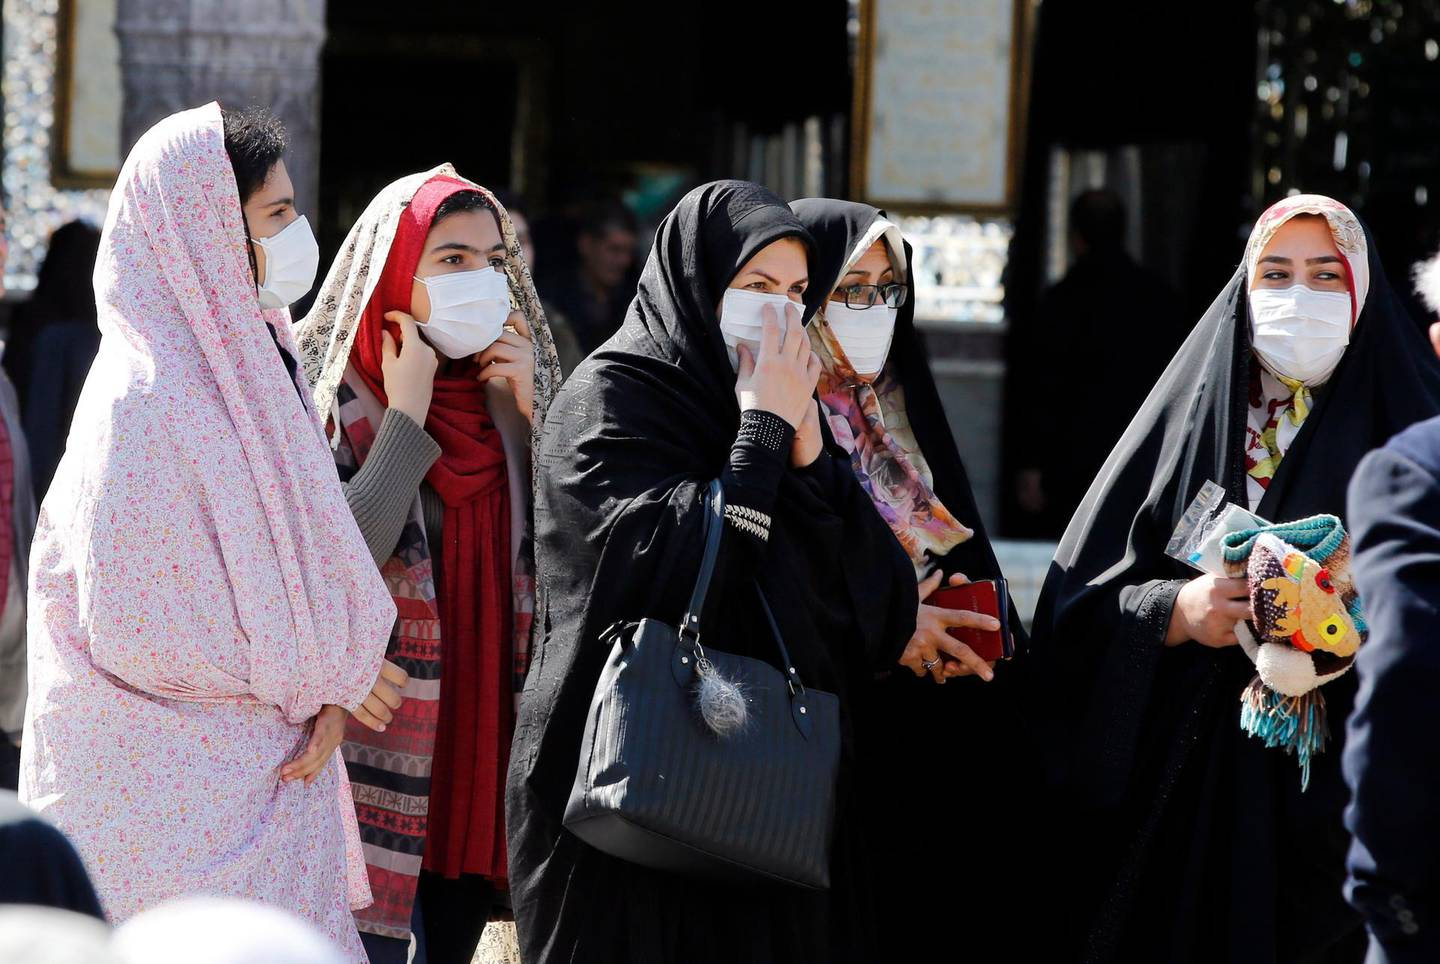 epa08233804 Iranian women wearing face masks wait in line at a polling station set up at the Abdol Azim shrine during the parliamentary elections in Shahr-e-Ray, Tehran Province, Iran, 21 February 2020. Iranians are heading to the polls to elect their representatives to the Islamic Consultative Assembly amid a worsening economic crisis and escalating tensions with the US.  EPA/ABEDIN TAHERKENAREH